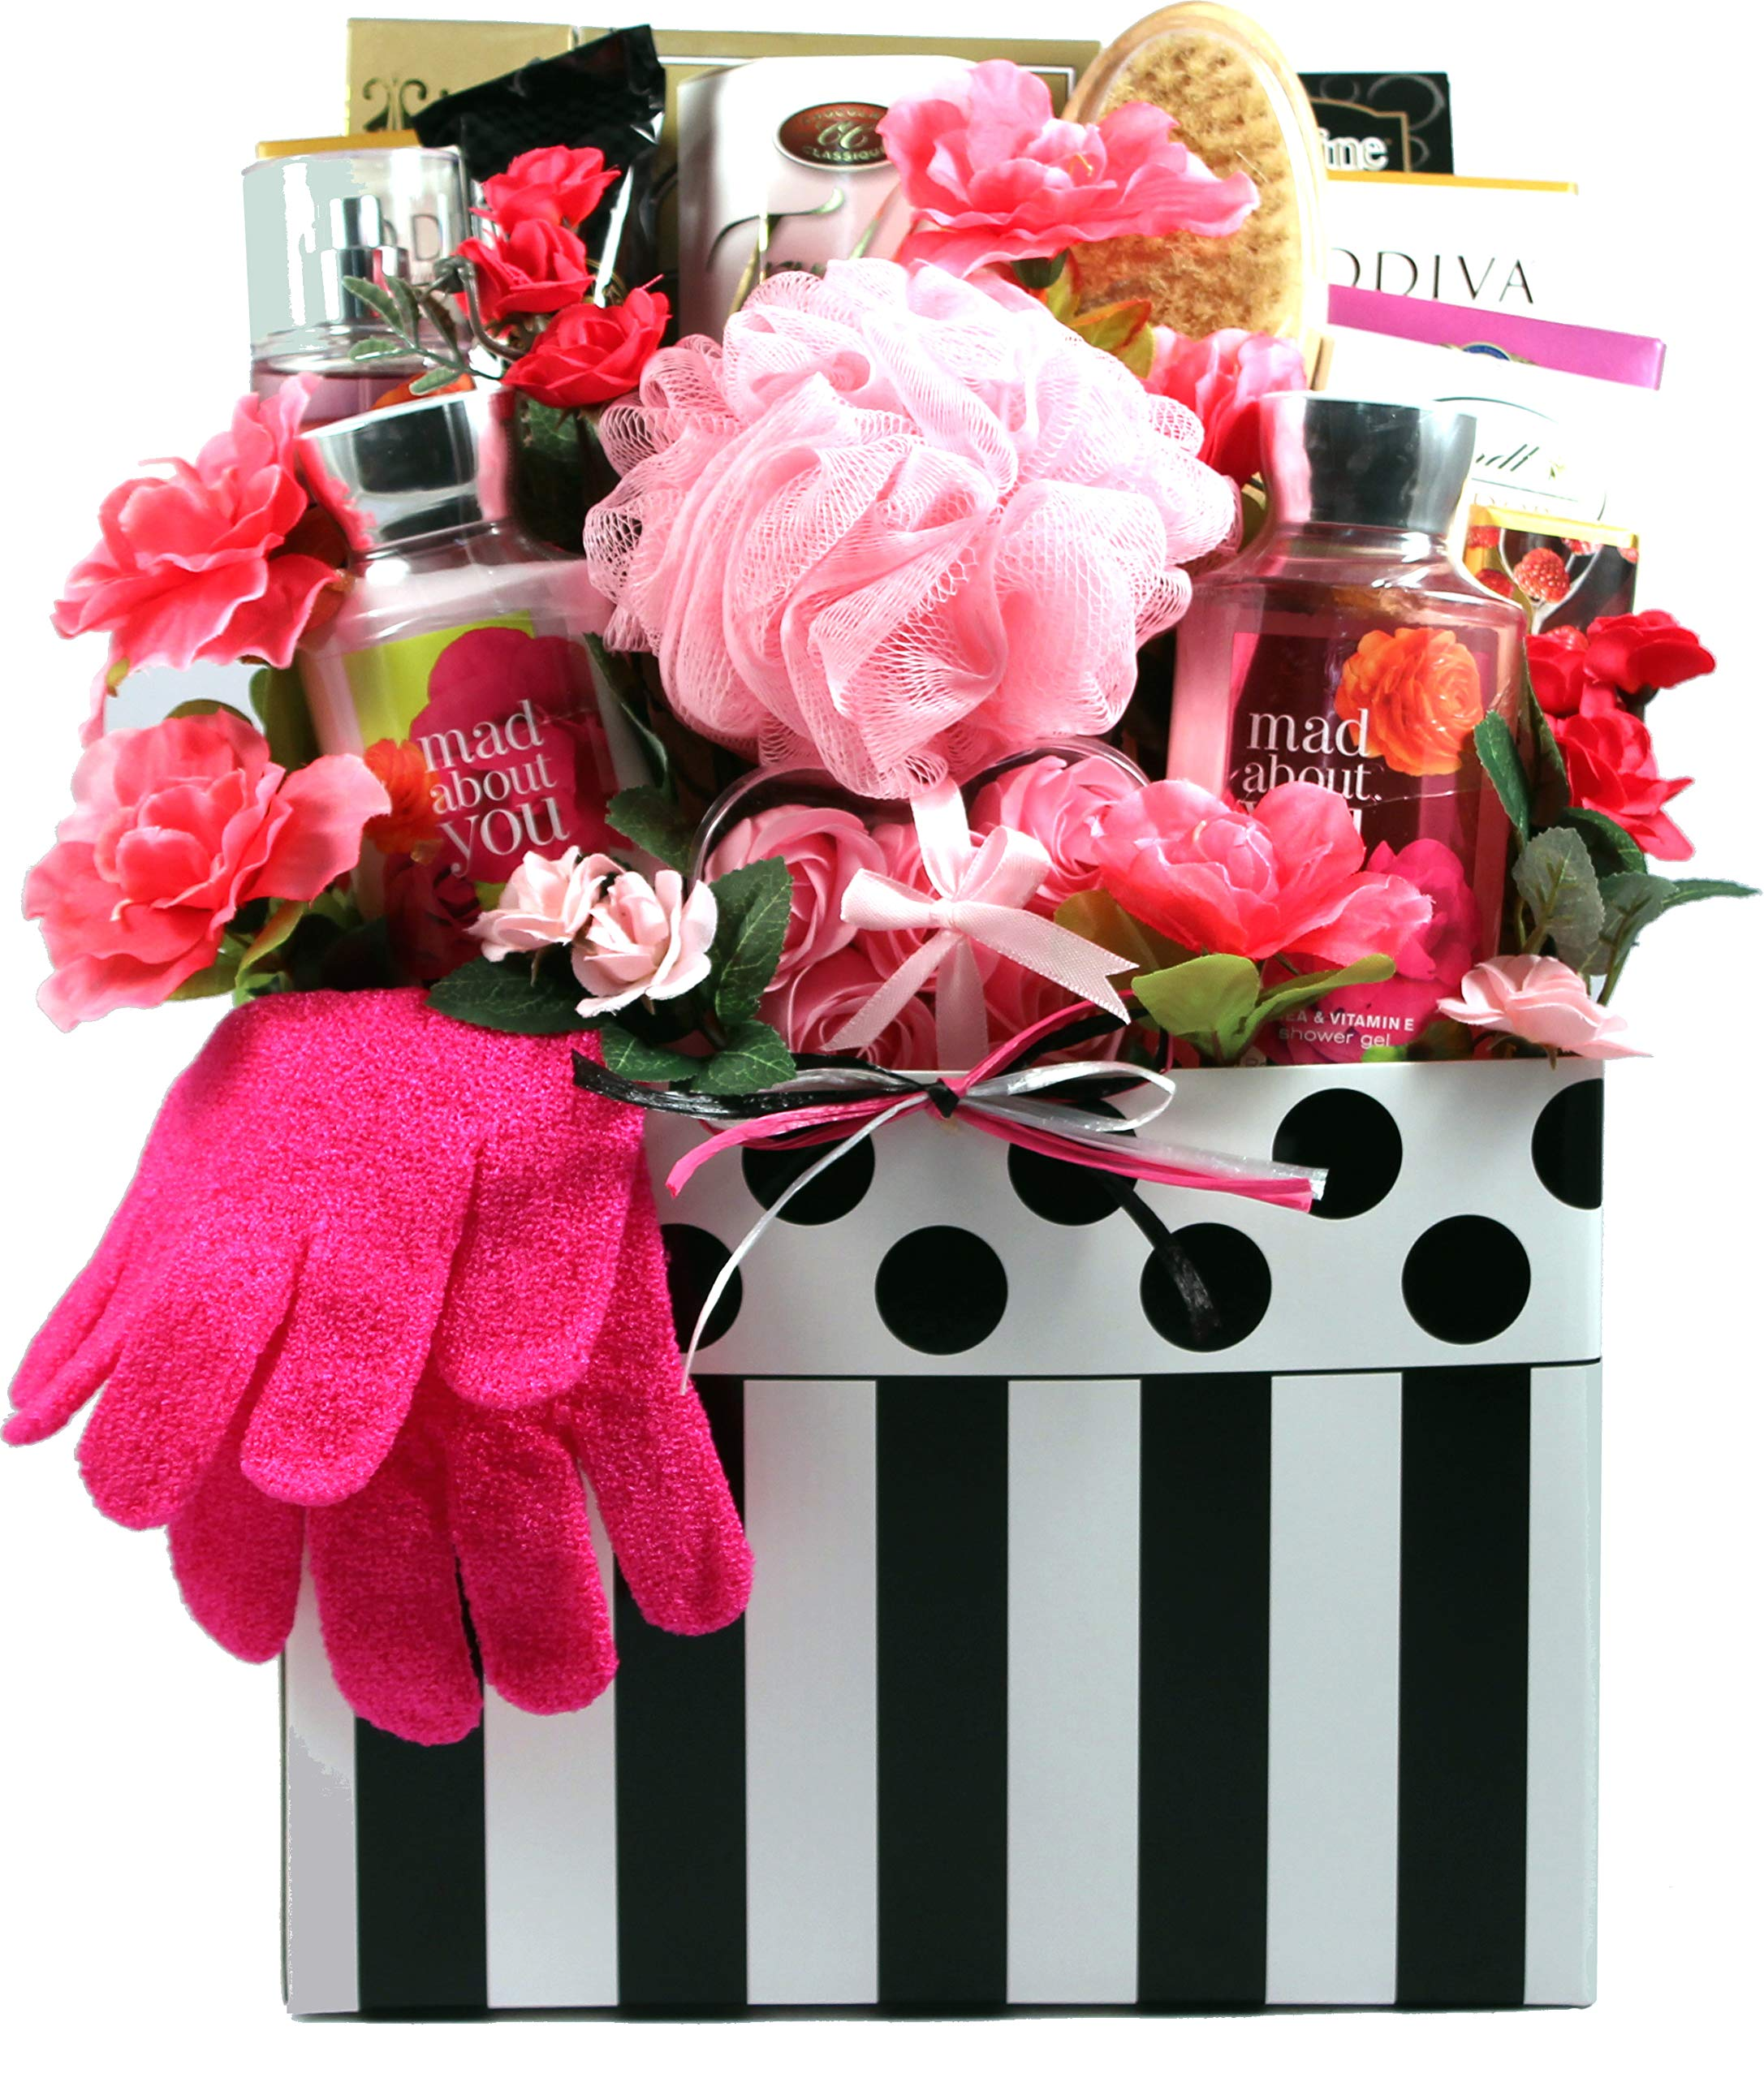 Gift Basket Village - Mad About You, Deluxe Bath & Chocolate Gift Basket For Her - With Spa Quality Personal Care Products & Mouthwatering Chocolates (Large) by Gift Basket Village